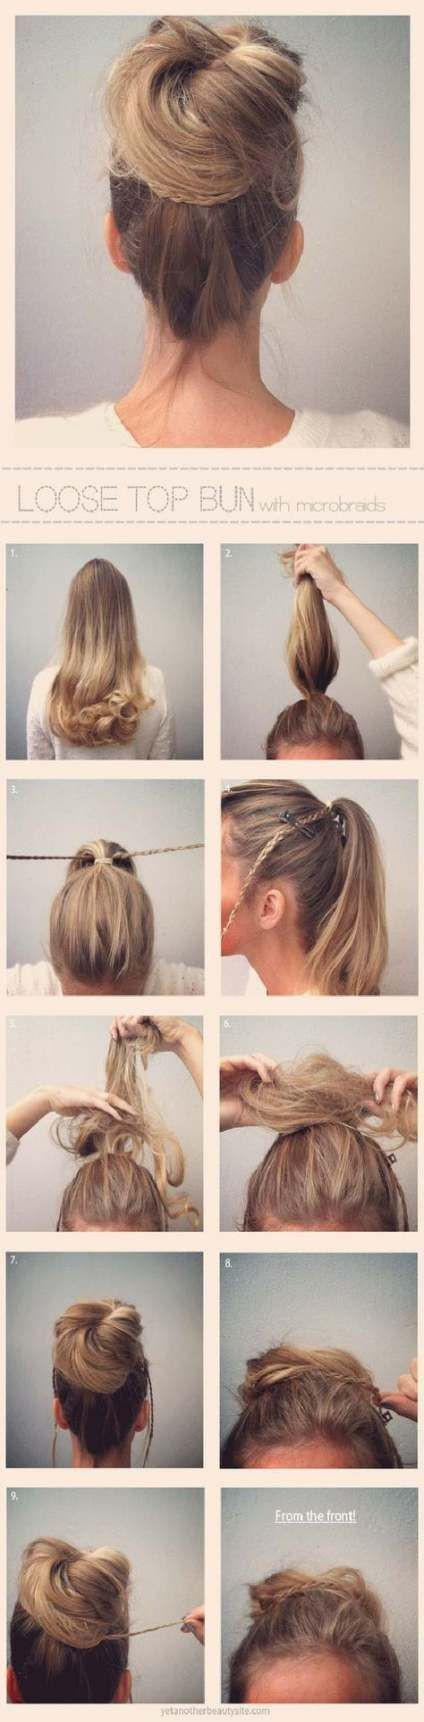 18 ideas hair easy quick lazy girl top knot, #Easy #Girl #Hair #Ideas #knot #Lazy #Quick #To